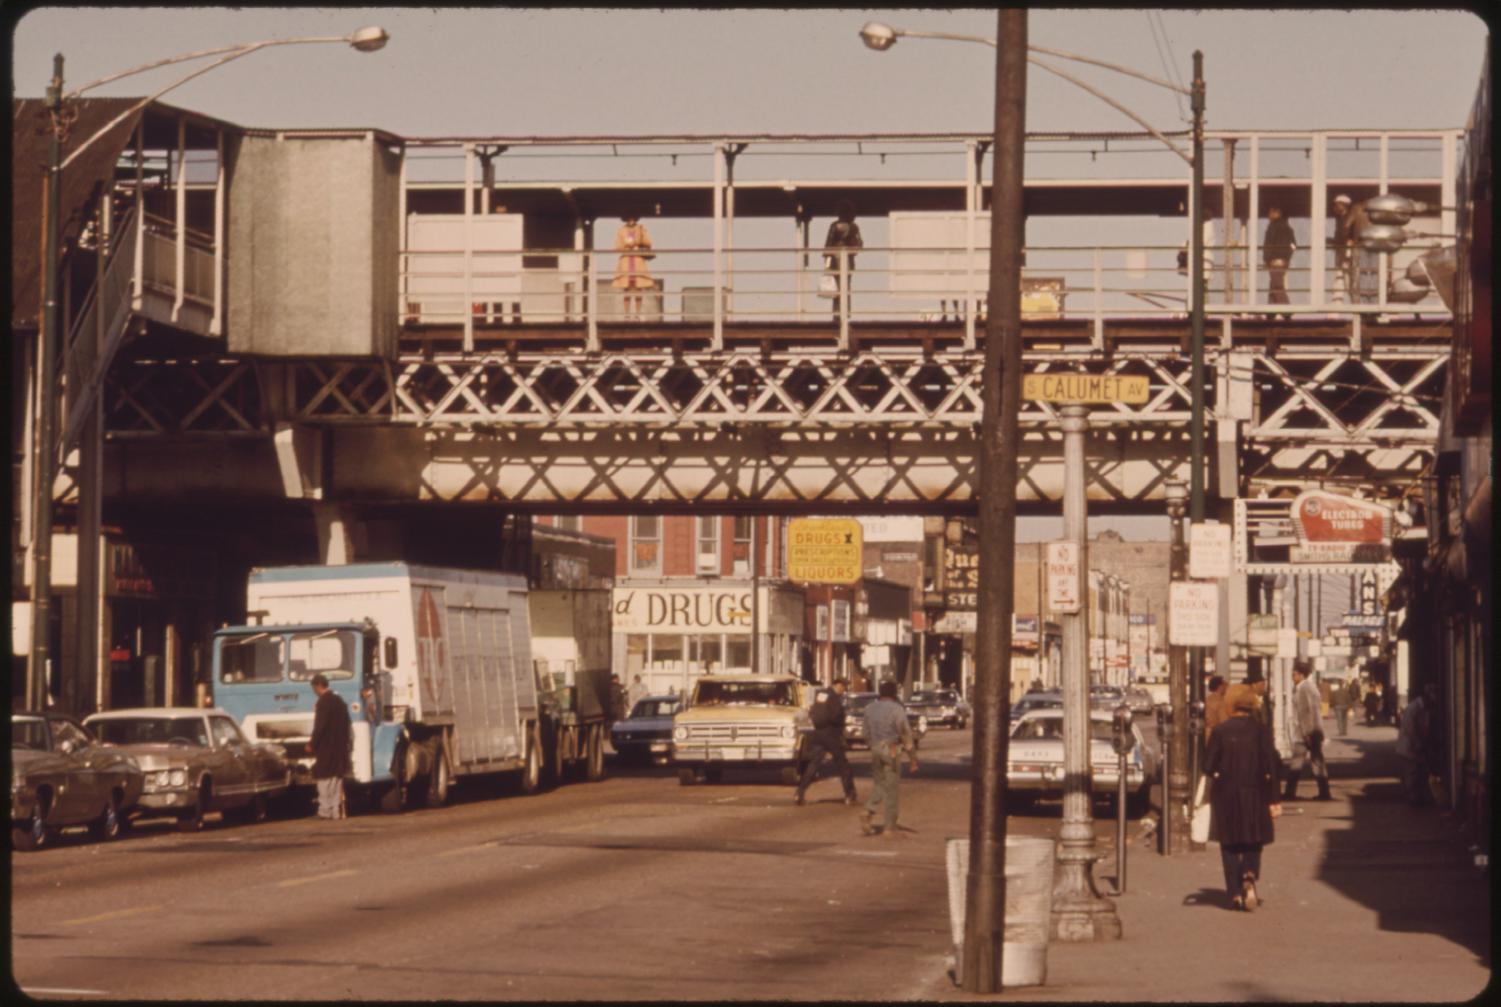 63rd Street El, 1973. This file was provided to Wikimedia Commons by the National Archives and Records Administration as part of a cooperation project.